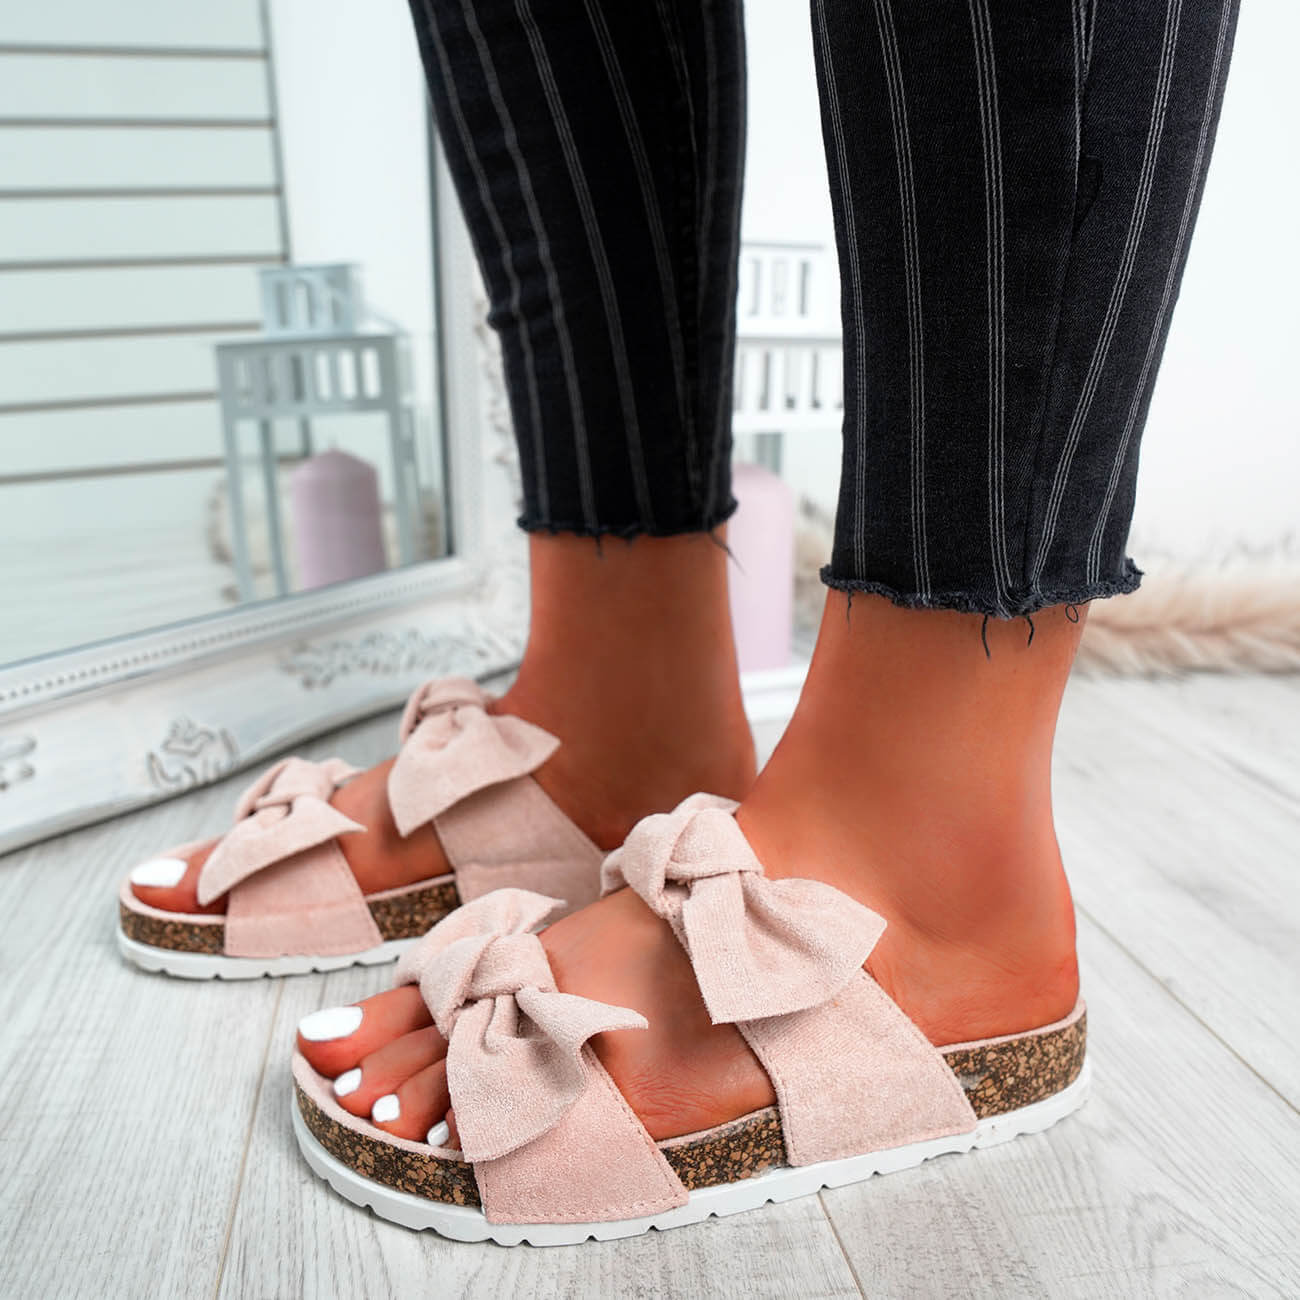 WOMENS-LADIES-PEEP-TOE-SLIP-ON-DOUBLE-BOW-FLAT-SANDALS-PARTY-CLUB-SUMMER-SHOES thumbnail 40